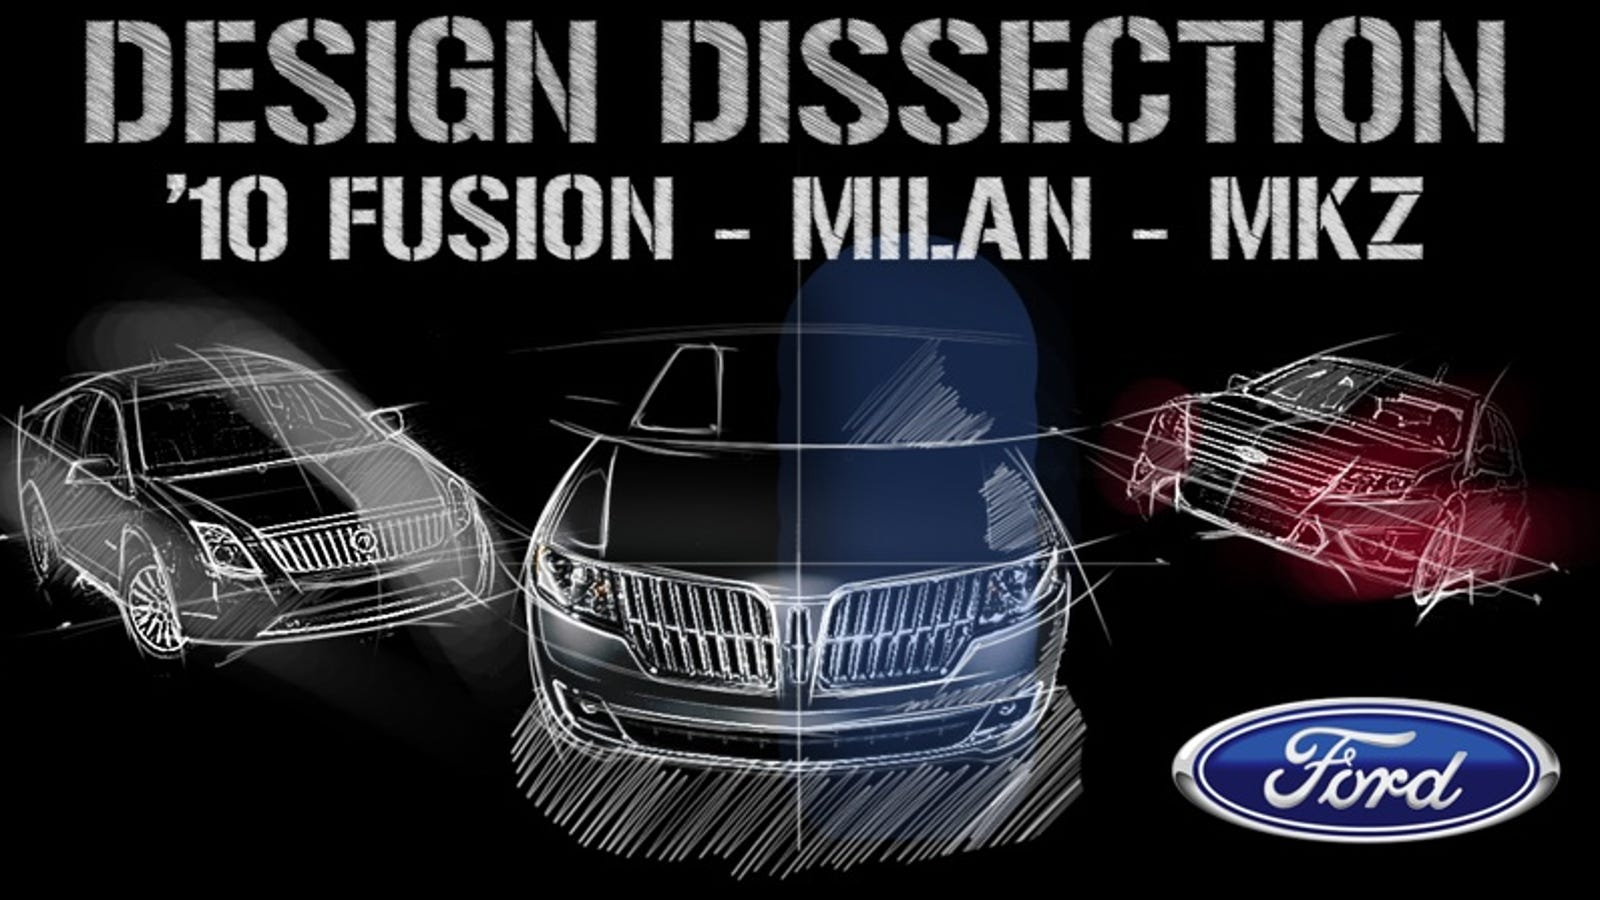 2010 Ford Fusion Mercury Milan Lincoln Mkz Design Dissected Hybrid 2011 Fuse Box